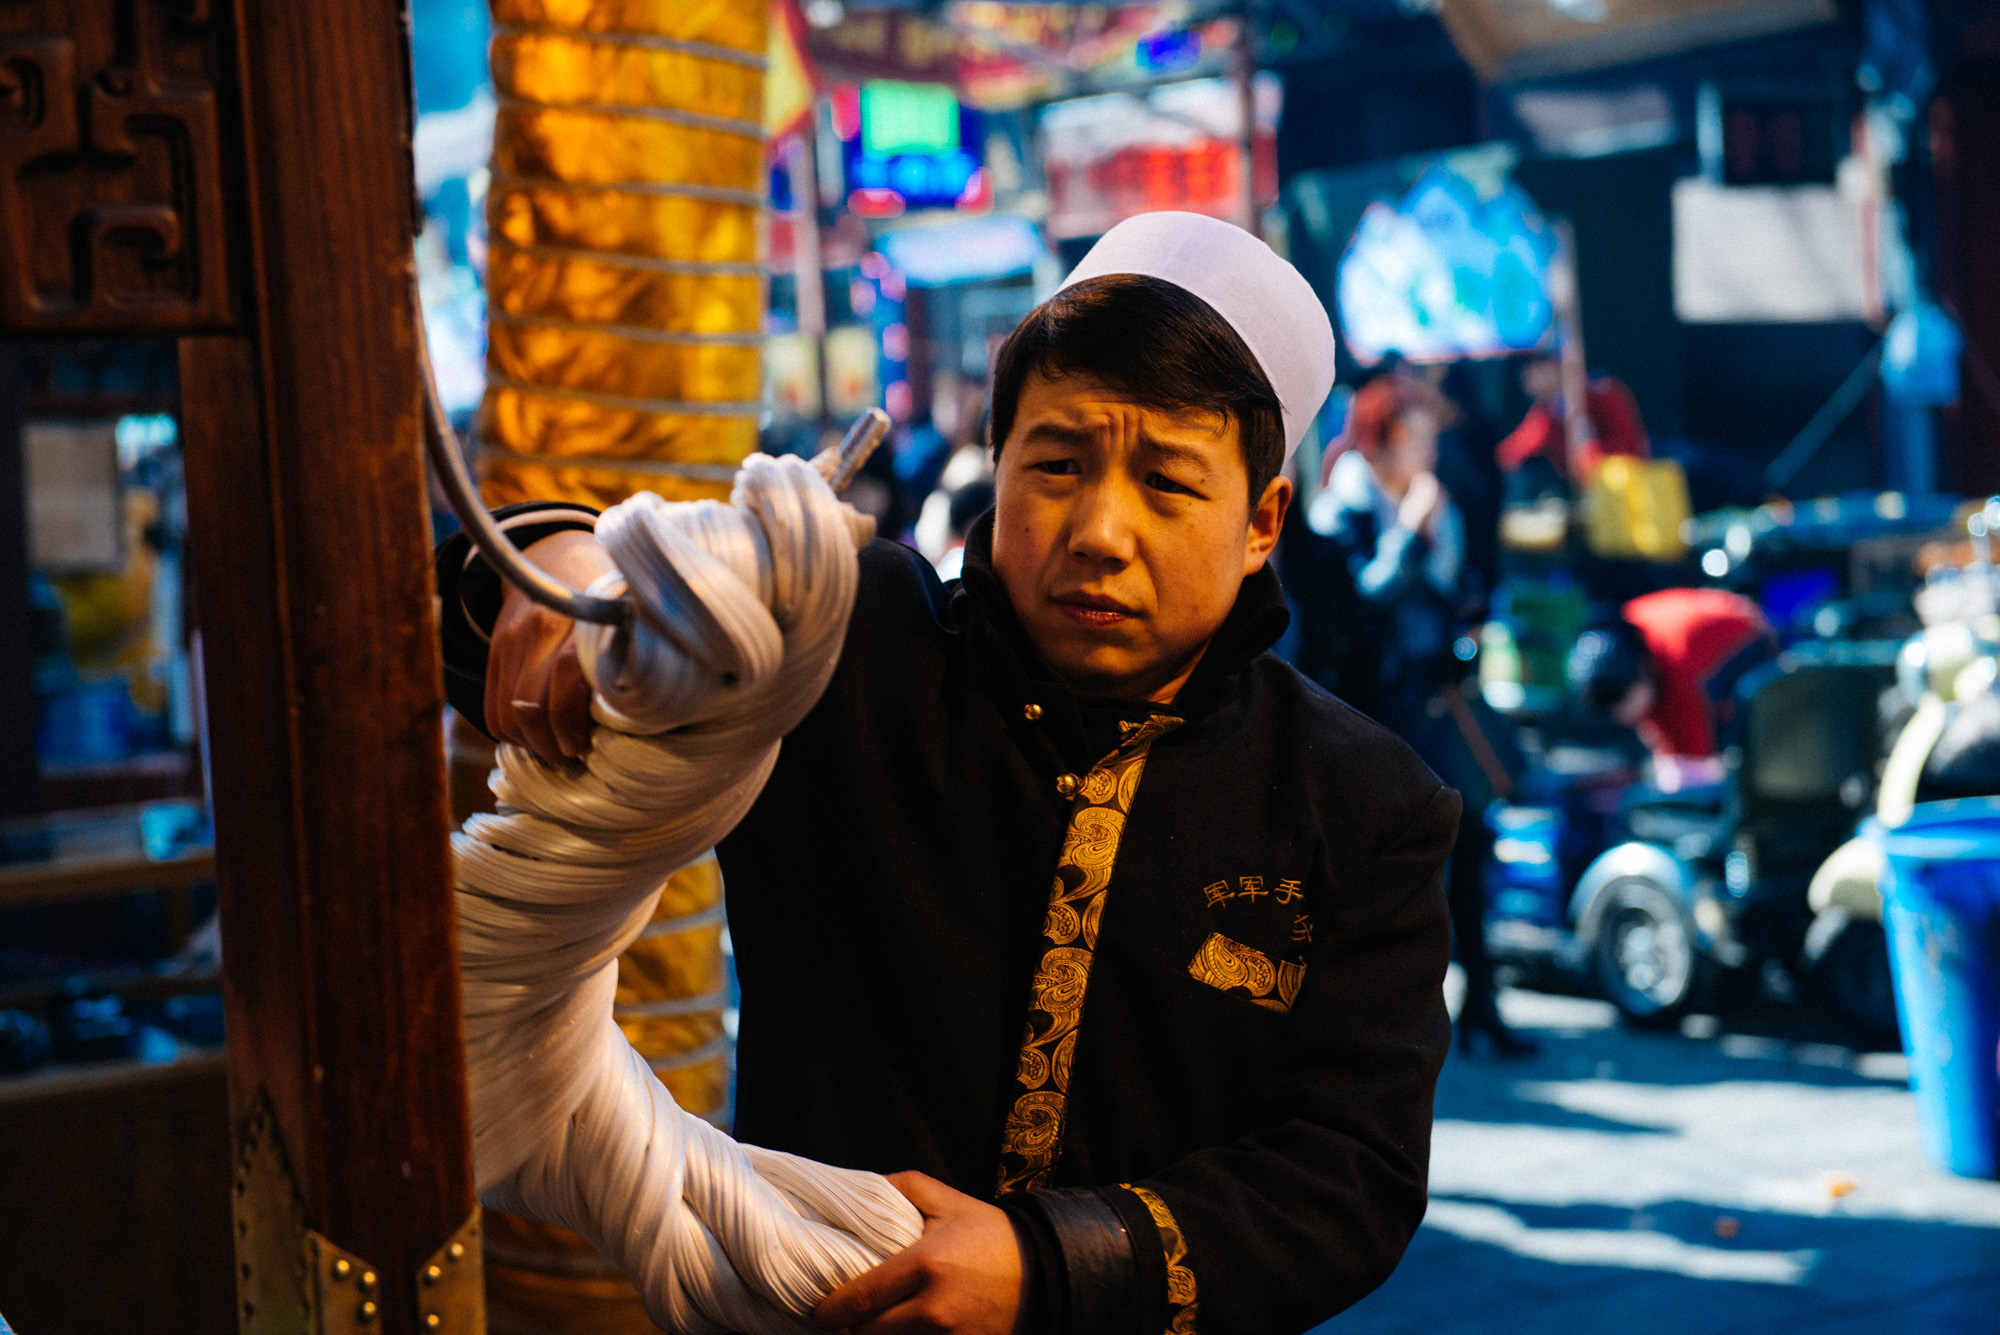 Several stores make candy on the streets where candy makers pull the sweet hanging from a hook making a popular attraction for tourists.